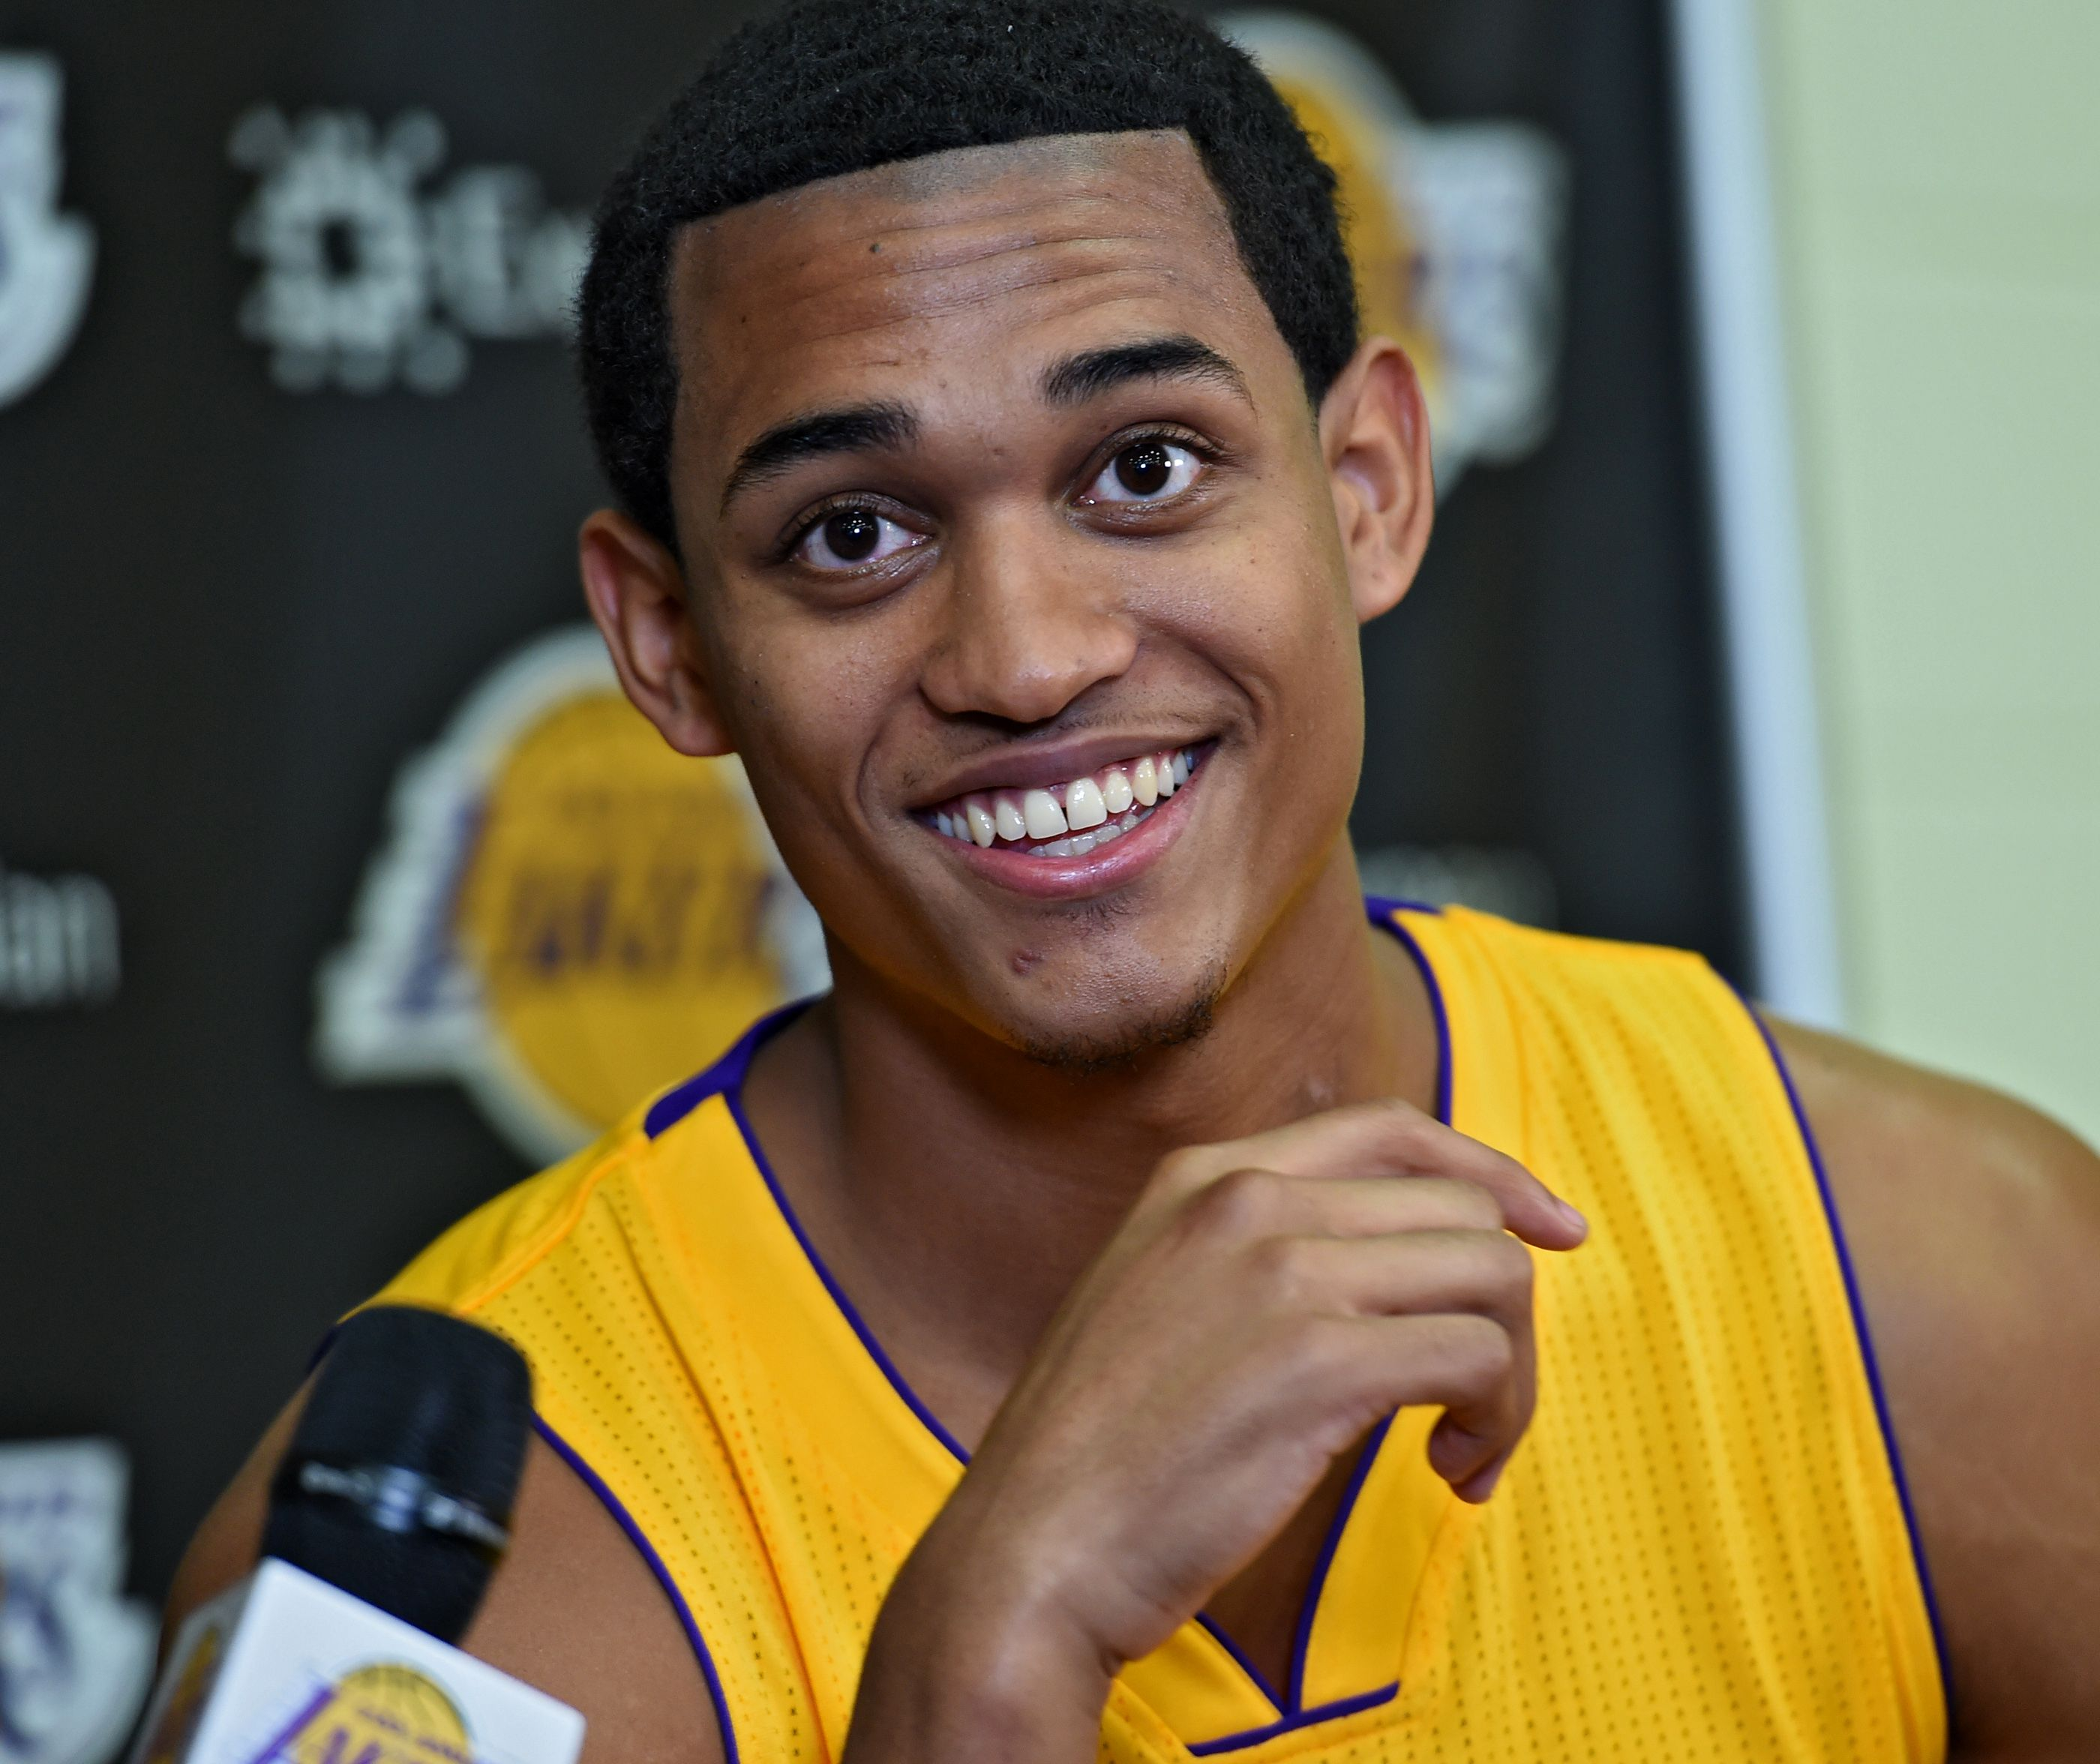 Jordan Clarkson's show of support: 'My heart is with my Gilas brothers in China'